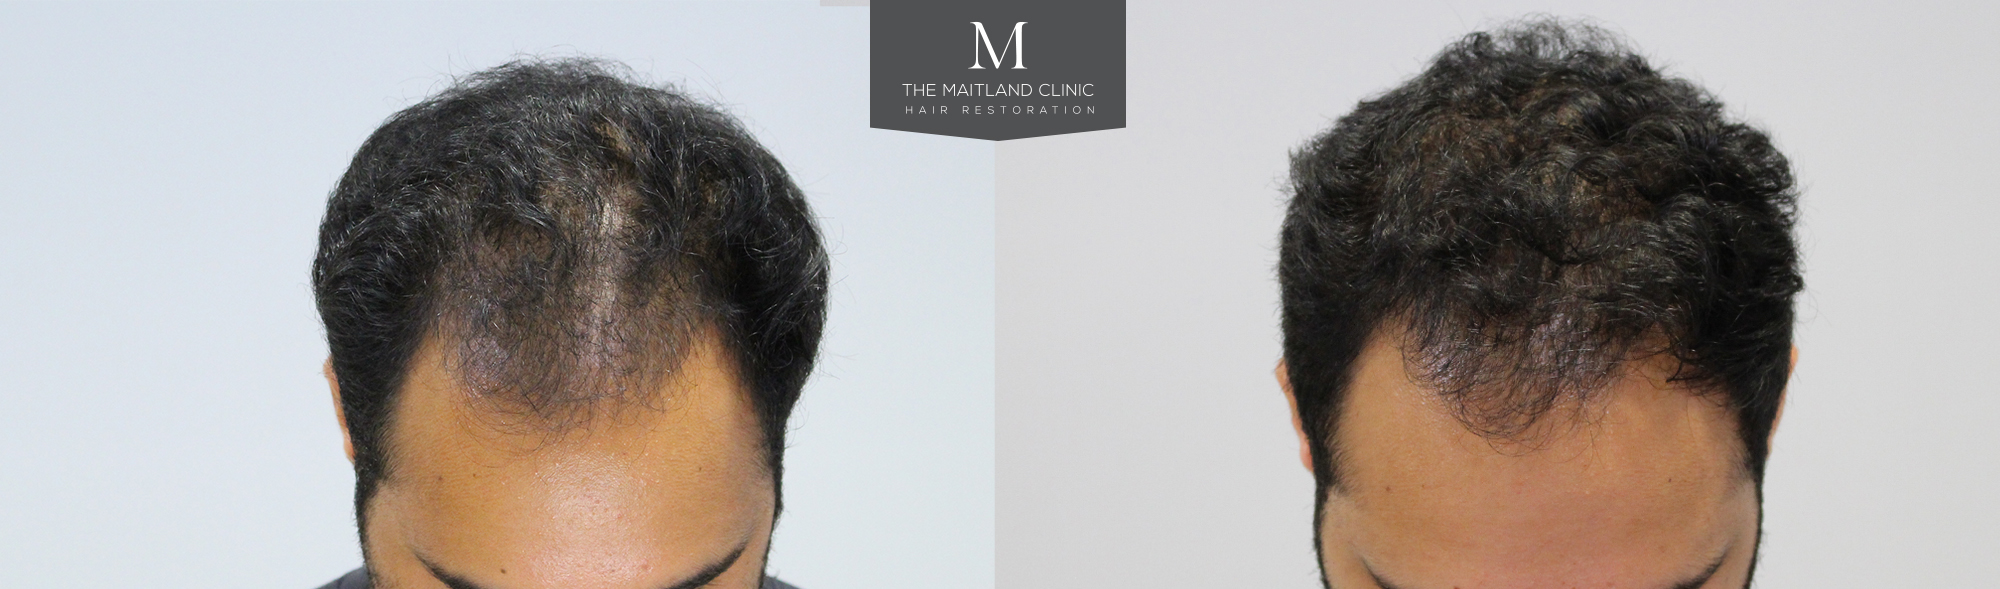 Before and after PRP treatment The Maitland Clinic